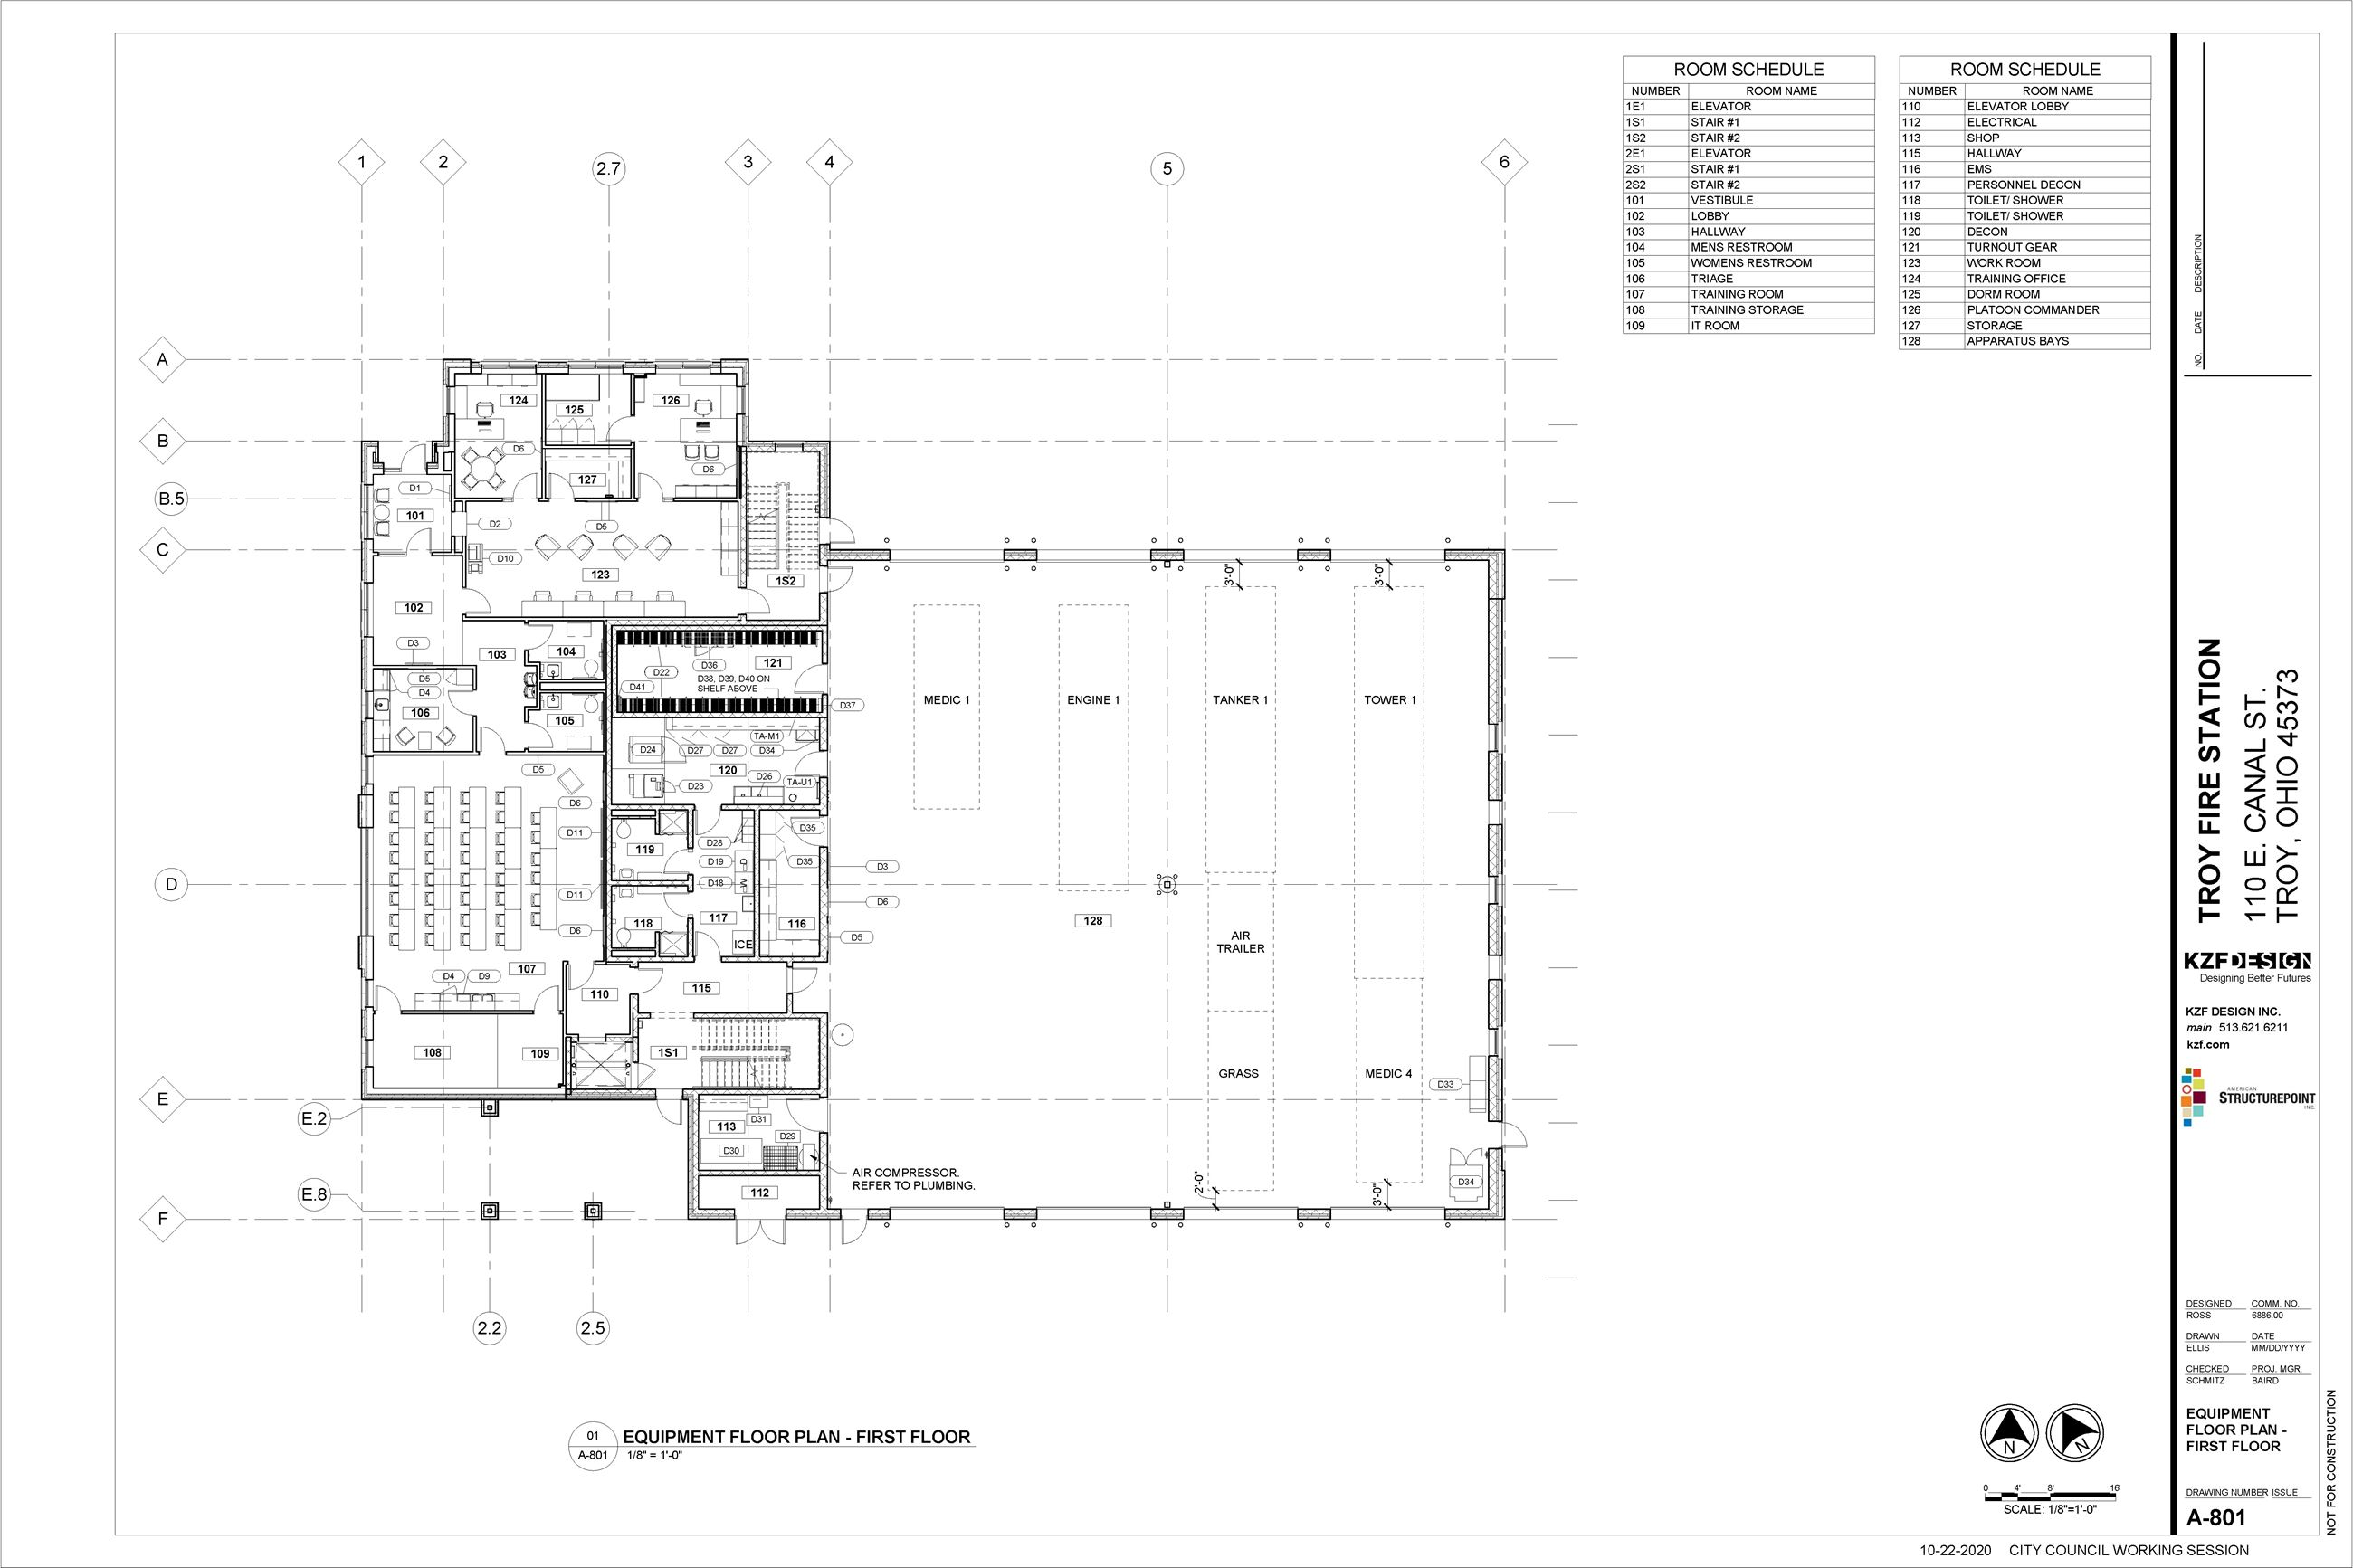 688600_A-801 - EQUIPMENT FLOOR PLAN - FIRST FLOOR_revised apparatus layout